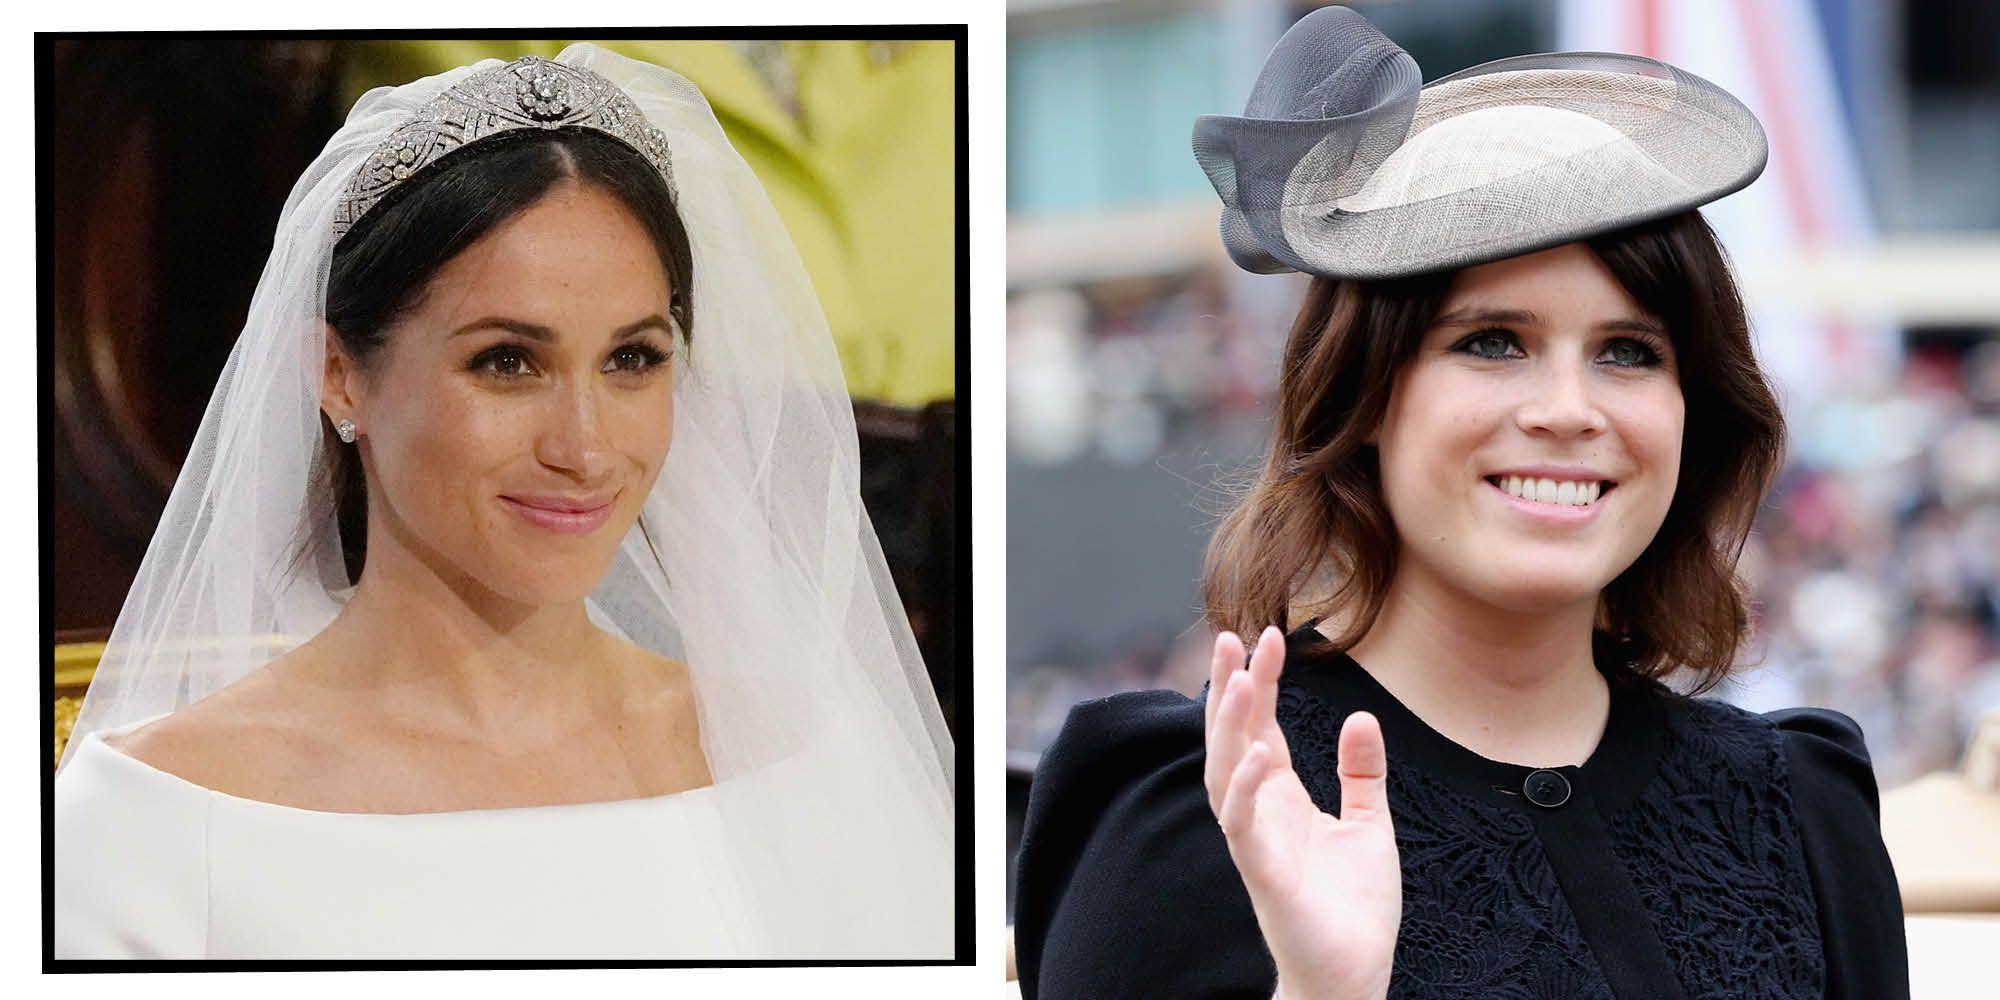 Princess Eugenie Copies Meghan Markle's Iconic Wedding Detail At St George's Chapel